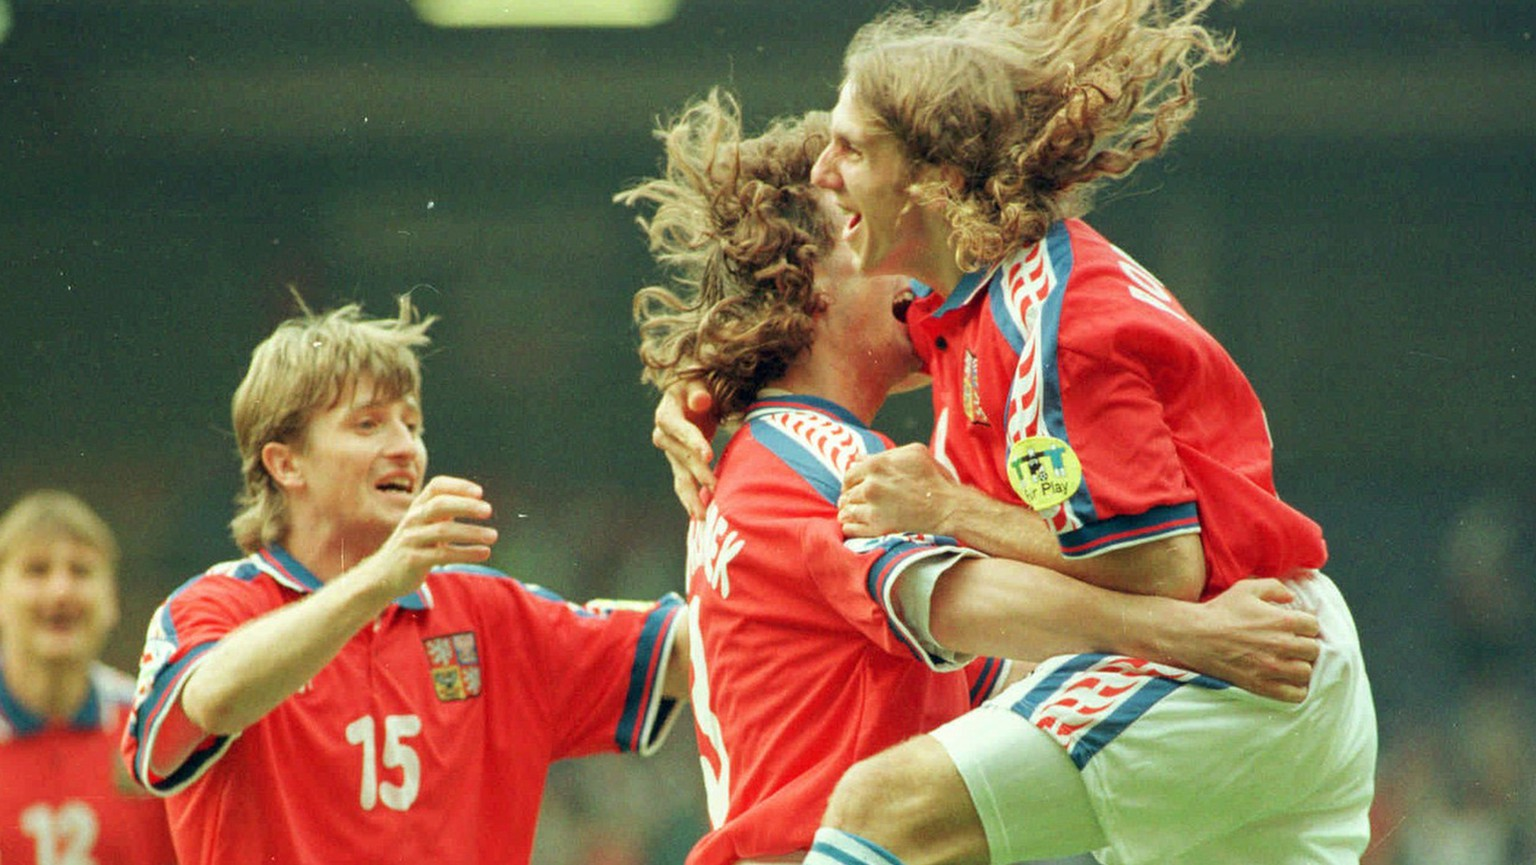 Jan Suchoparek of the Czech Republic, centre, is congratulated by Karel Poborski, right, and Michal Hornak after scoring his sides opening goal in their European Soccer Championships Group C match vs Russia at Anfield in Liverpool Wednesday June 19, 1996. (AP Photo)